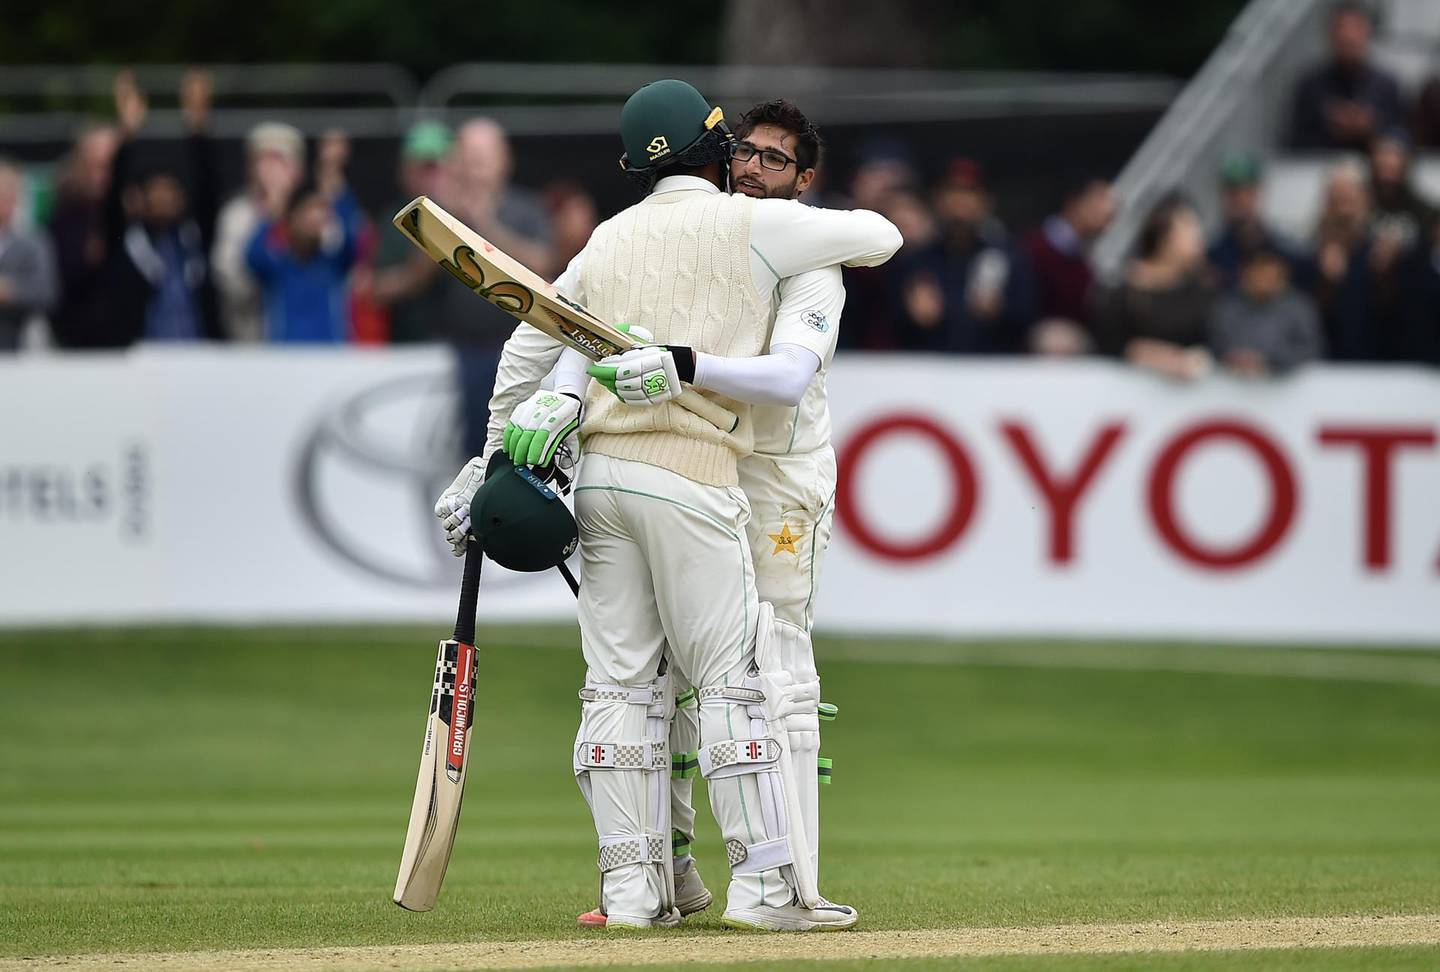 MALAHIDE, IRELAND - MAY 15: Imam ul-Haq of Pakistan is embraced by team mate Shadab Khan after scoring the winning run on the fifth day of the international test cricket match between Ireland and Pakistan on May 15, 2018 in Malahide, Ireland. (Photo by Charles McQuillan/Getty Images)